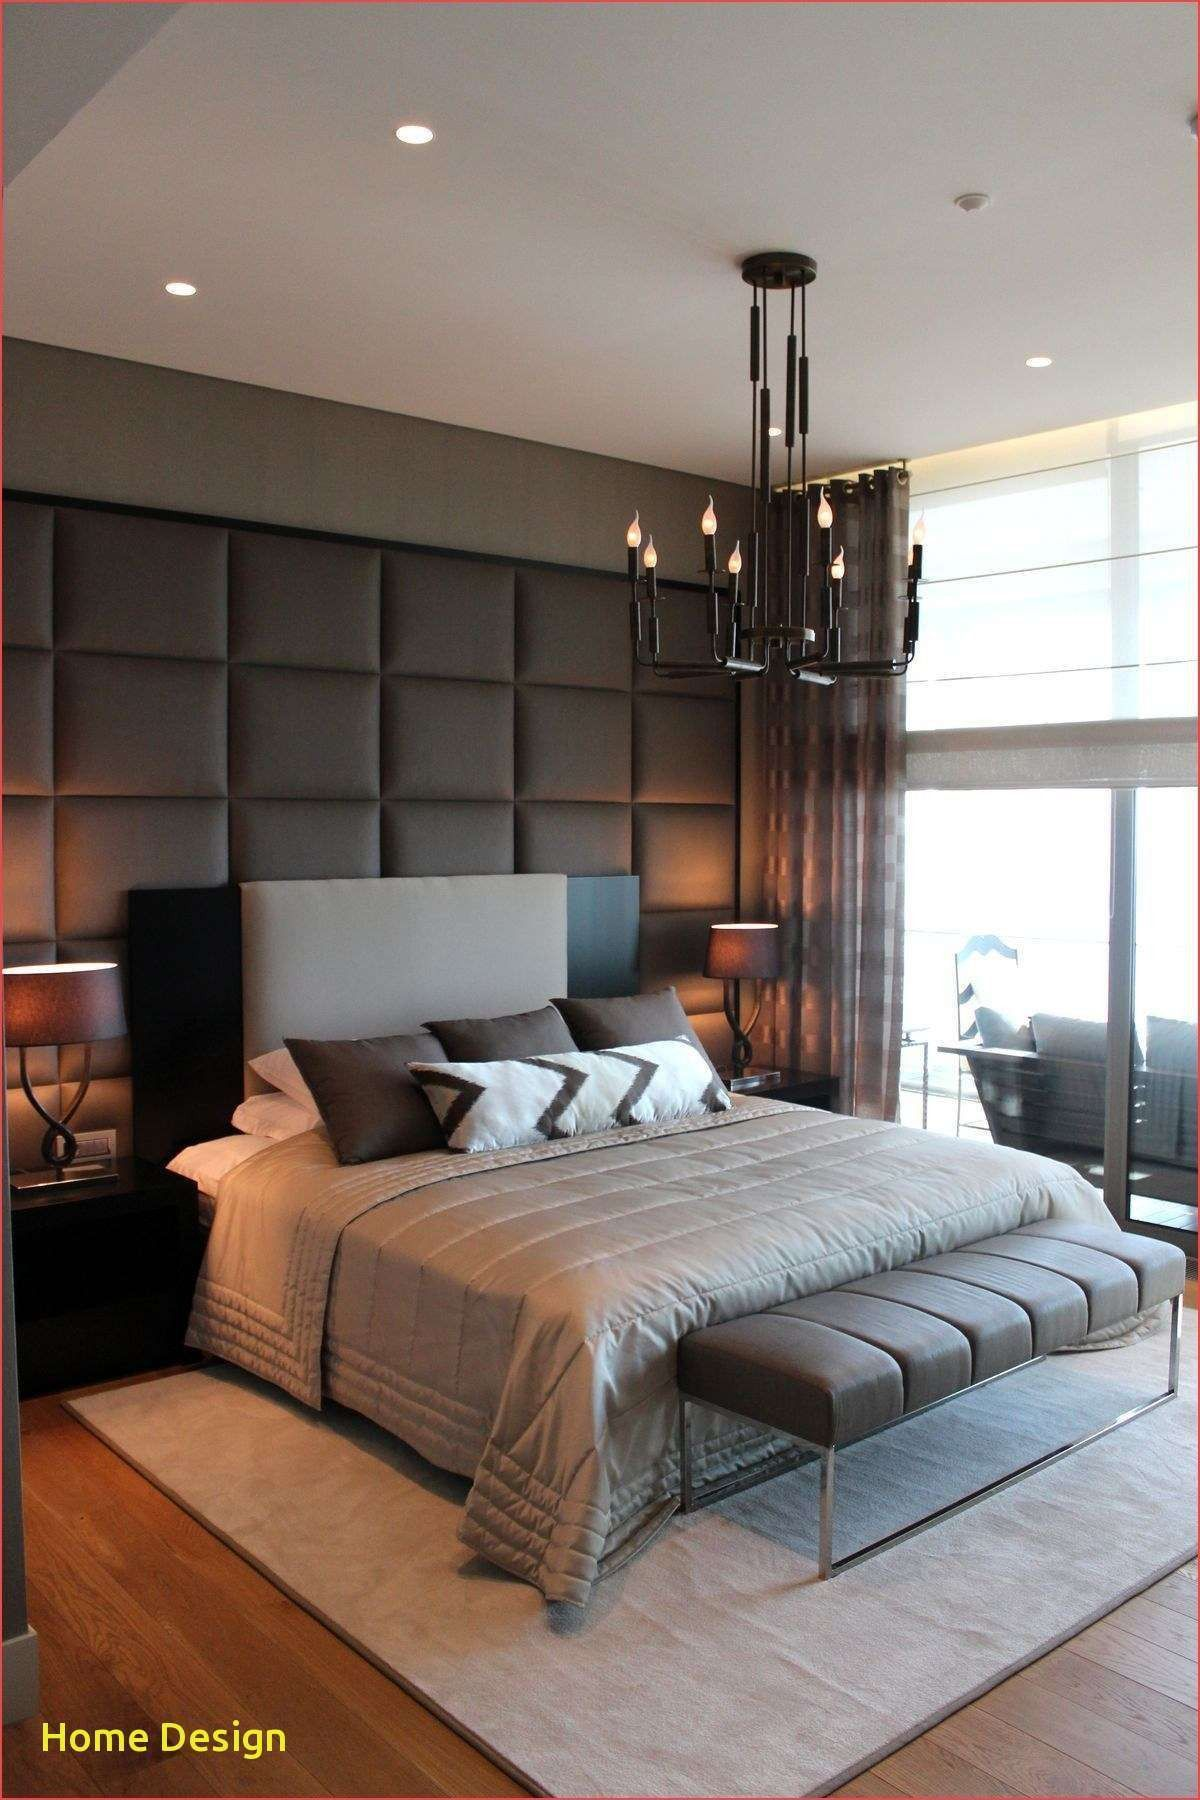 10 Home Makeover Bedroom Ideas (With images)   Bedroom ...